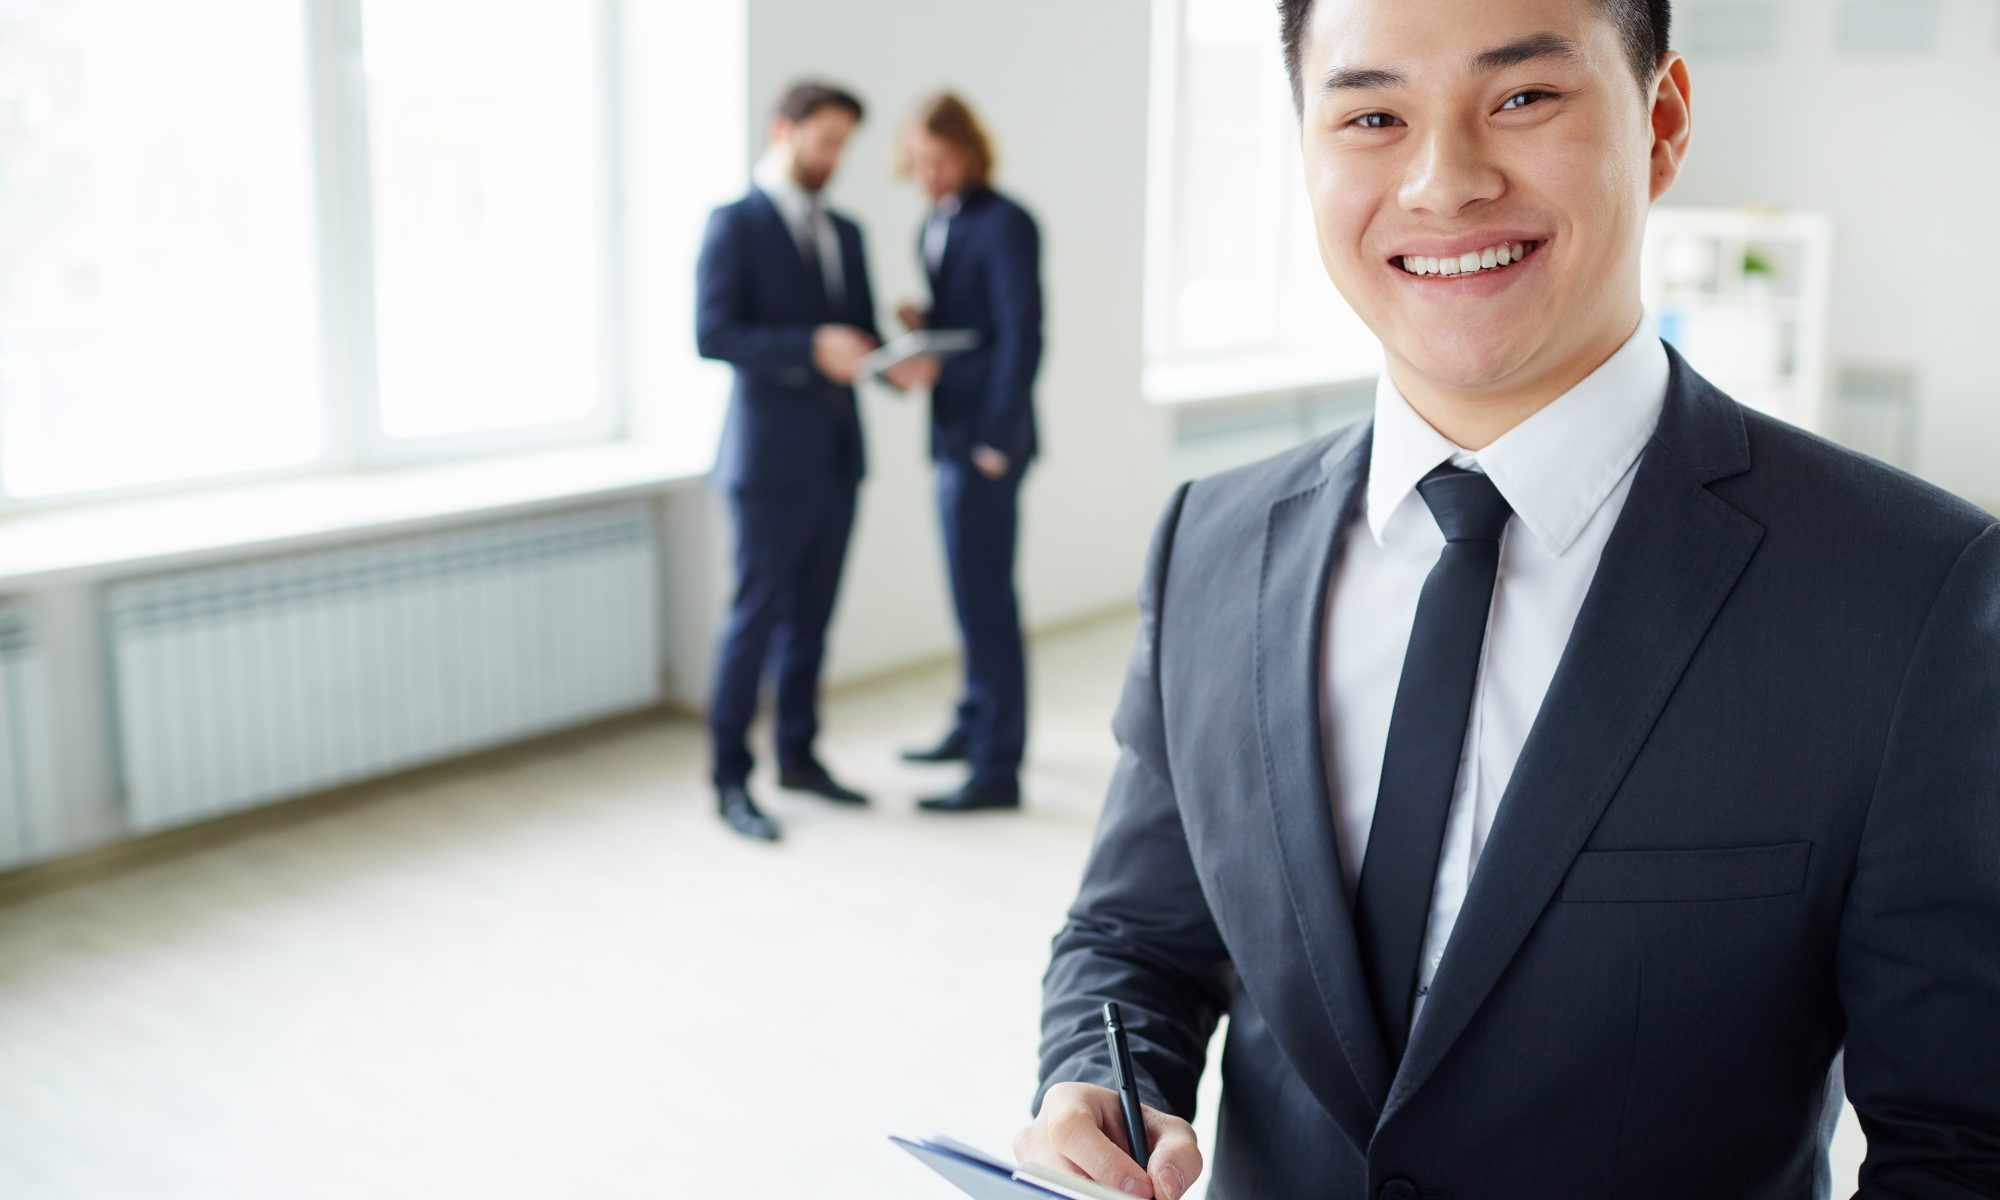 Young manager with management skills